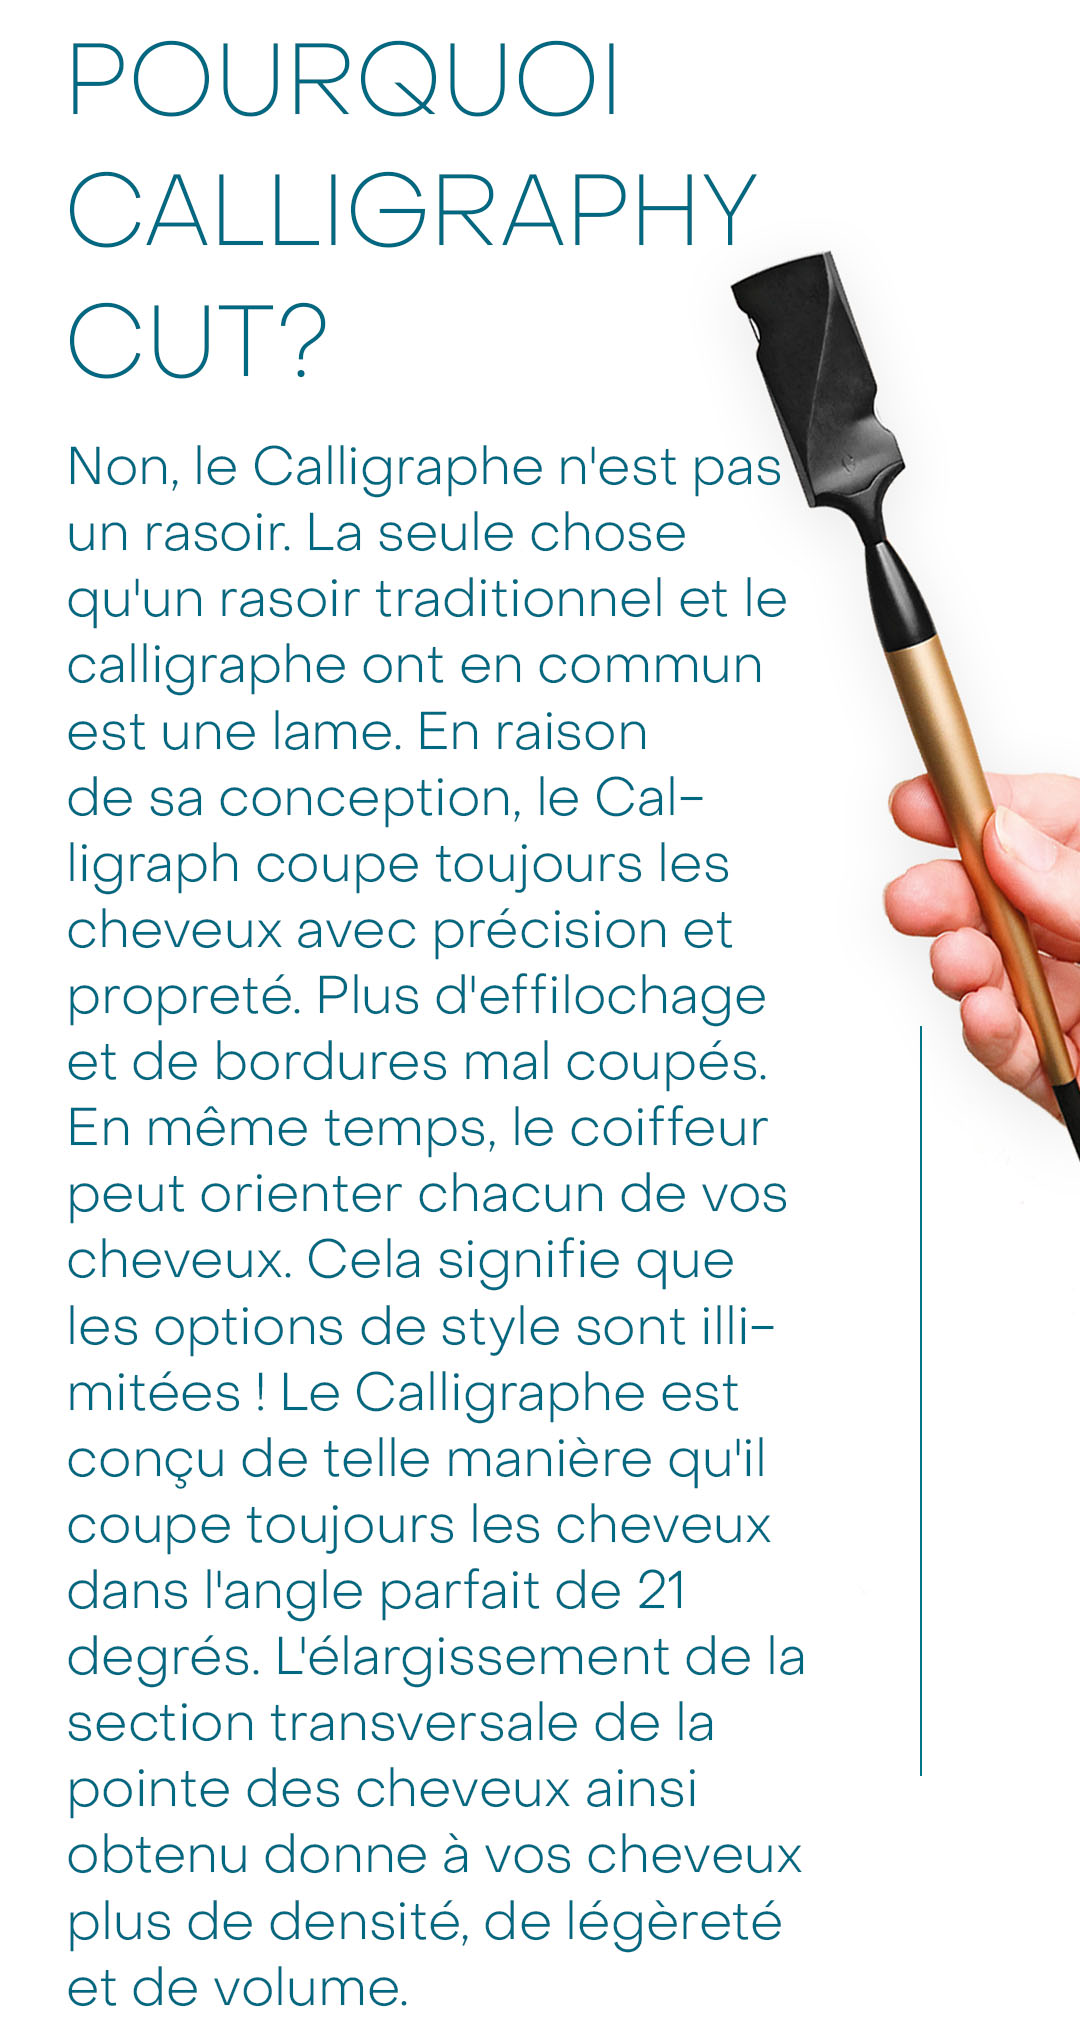 pourquoi-calligraphy-cut_mobile